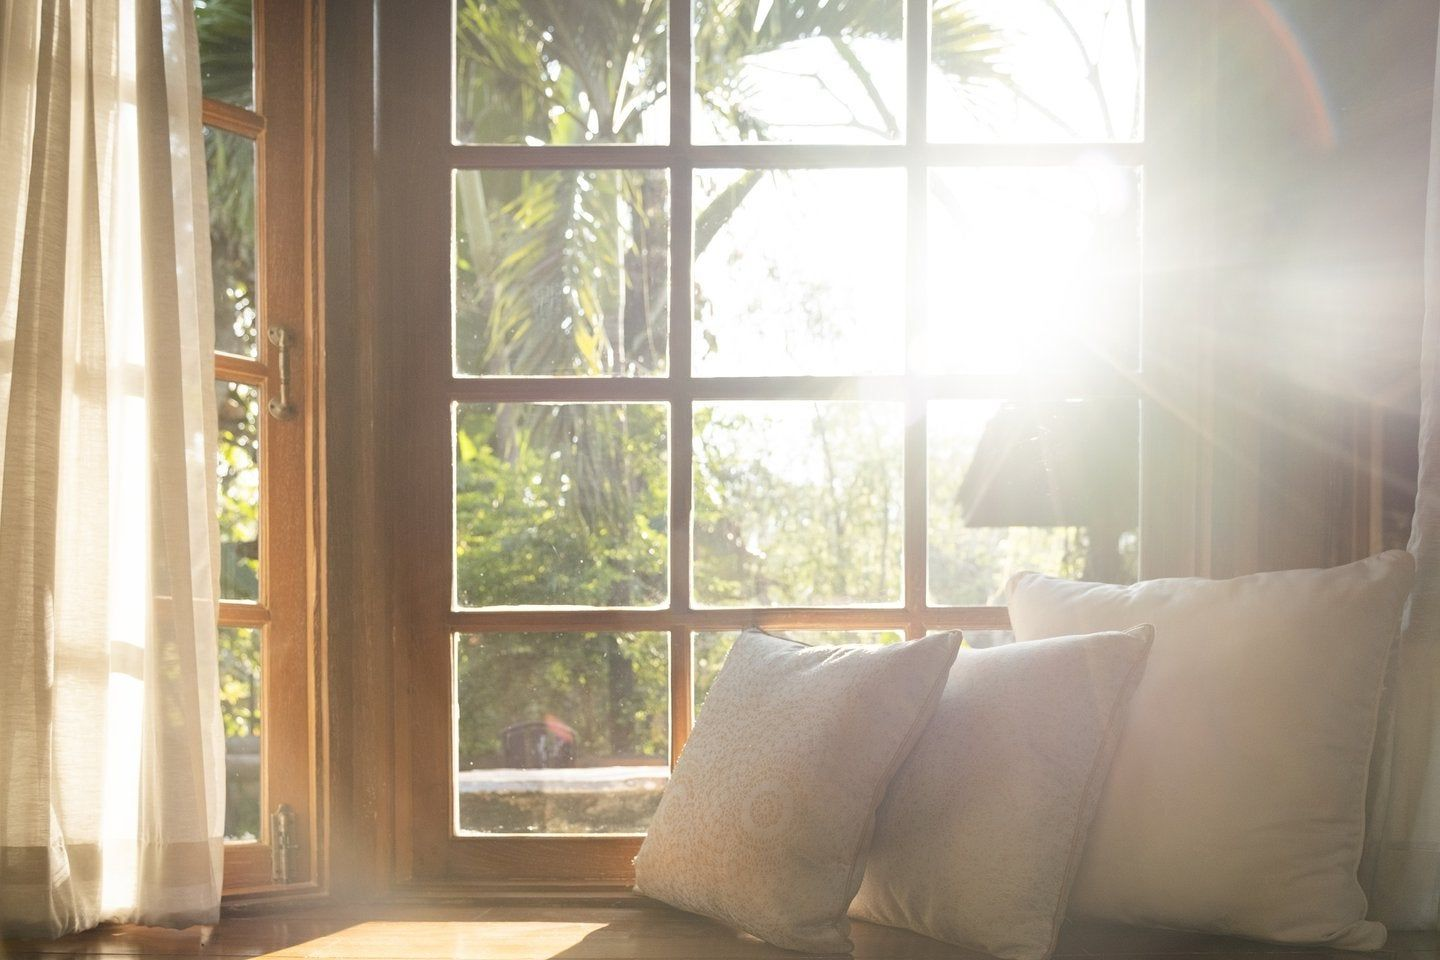 How to Increase the Amount of Natural Light in Your Home